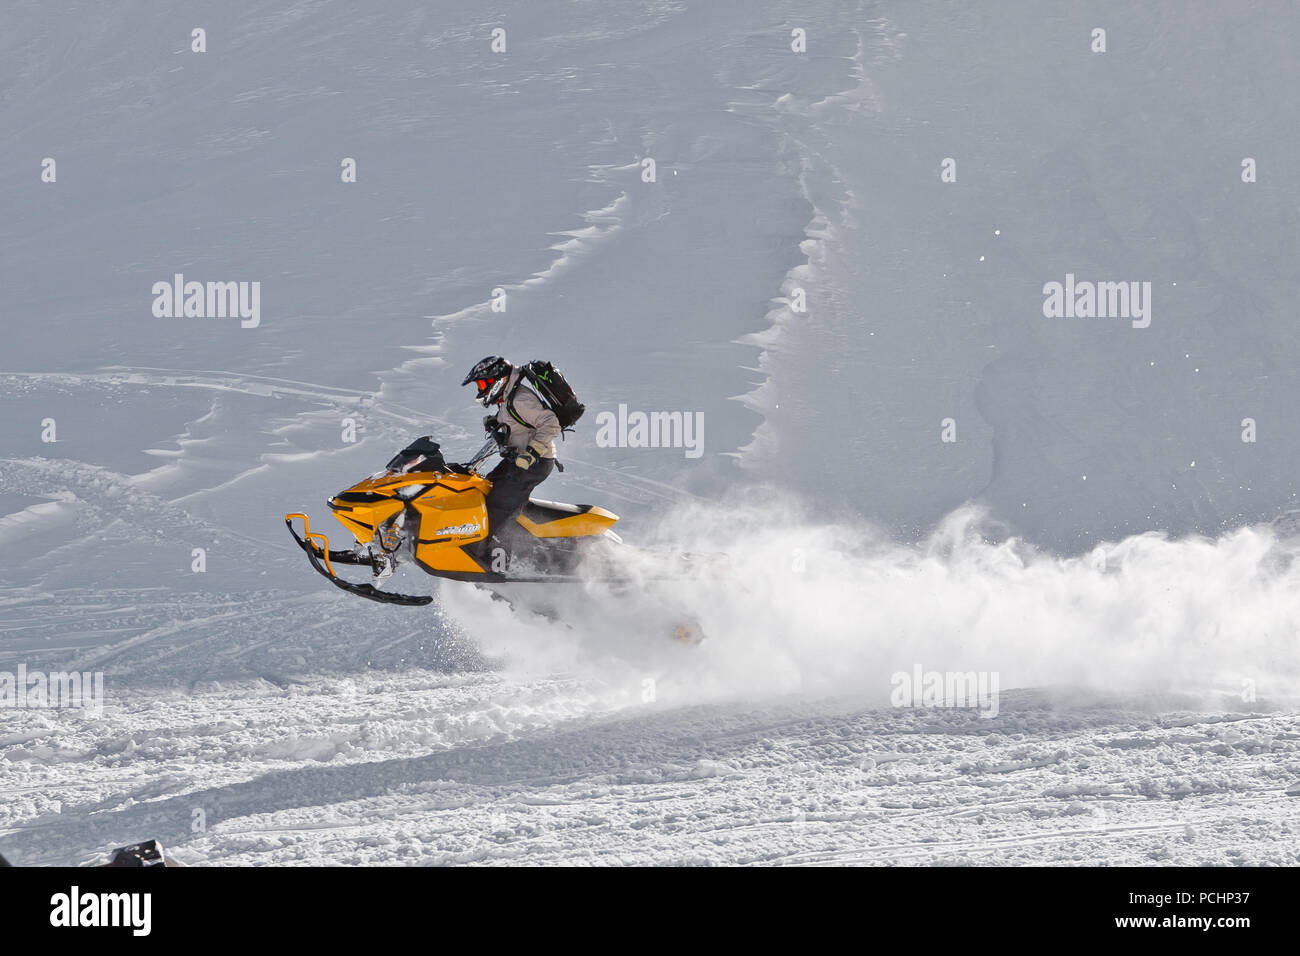 The rider bounces on a snowmobile on a plateau of Lago-Naki in Adygea, Russia February 2, 2012. - Stock Image